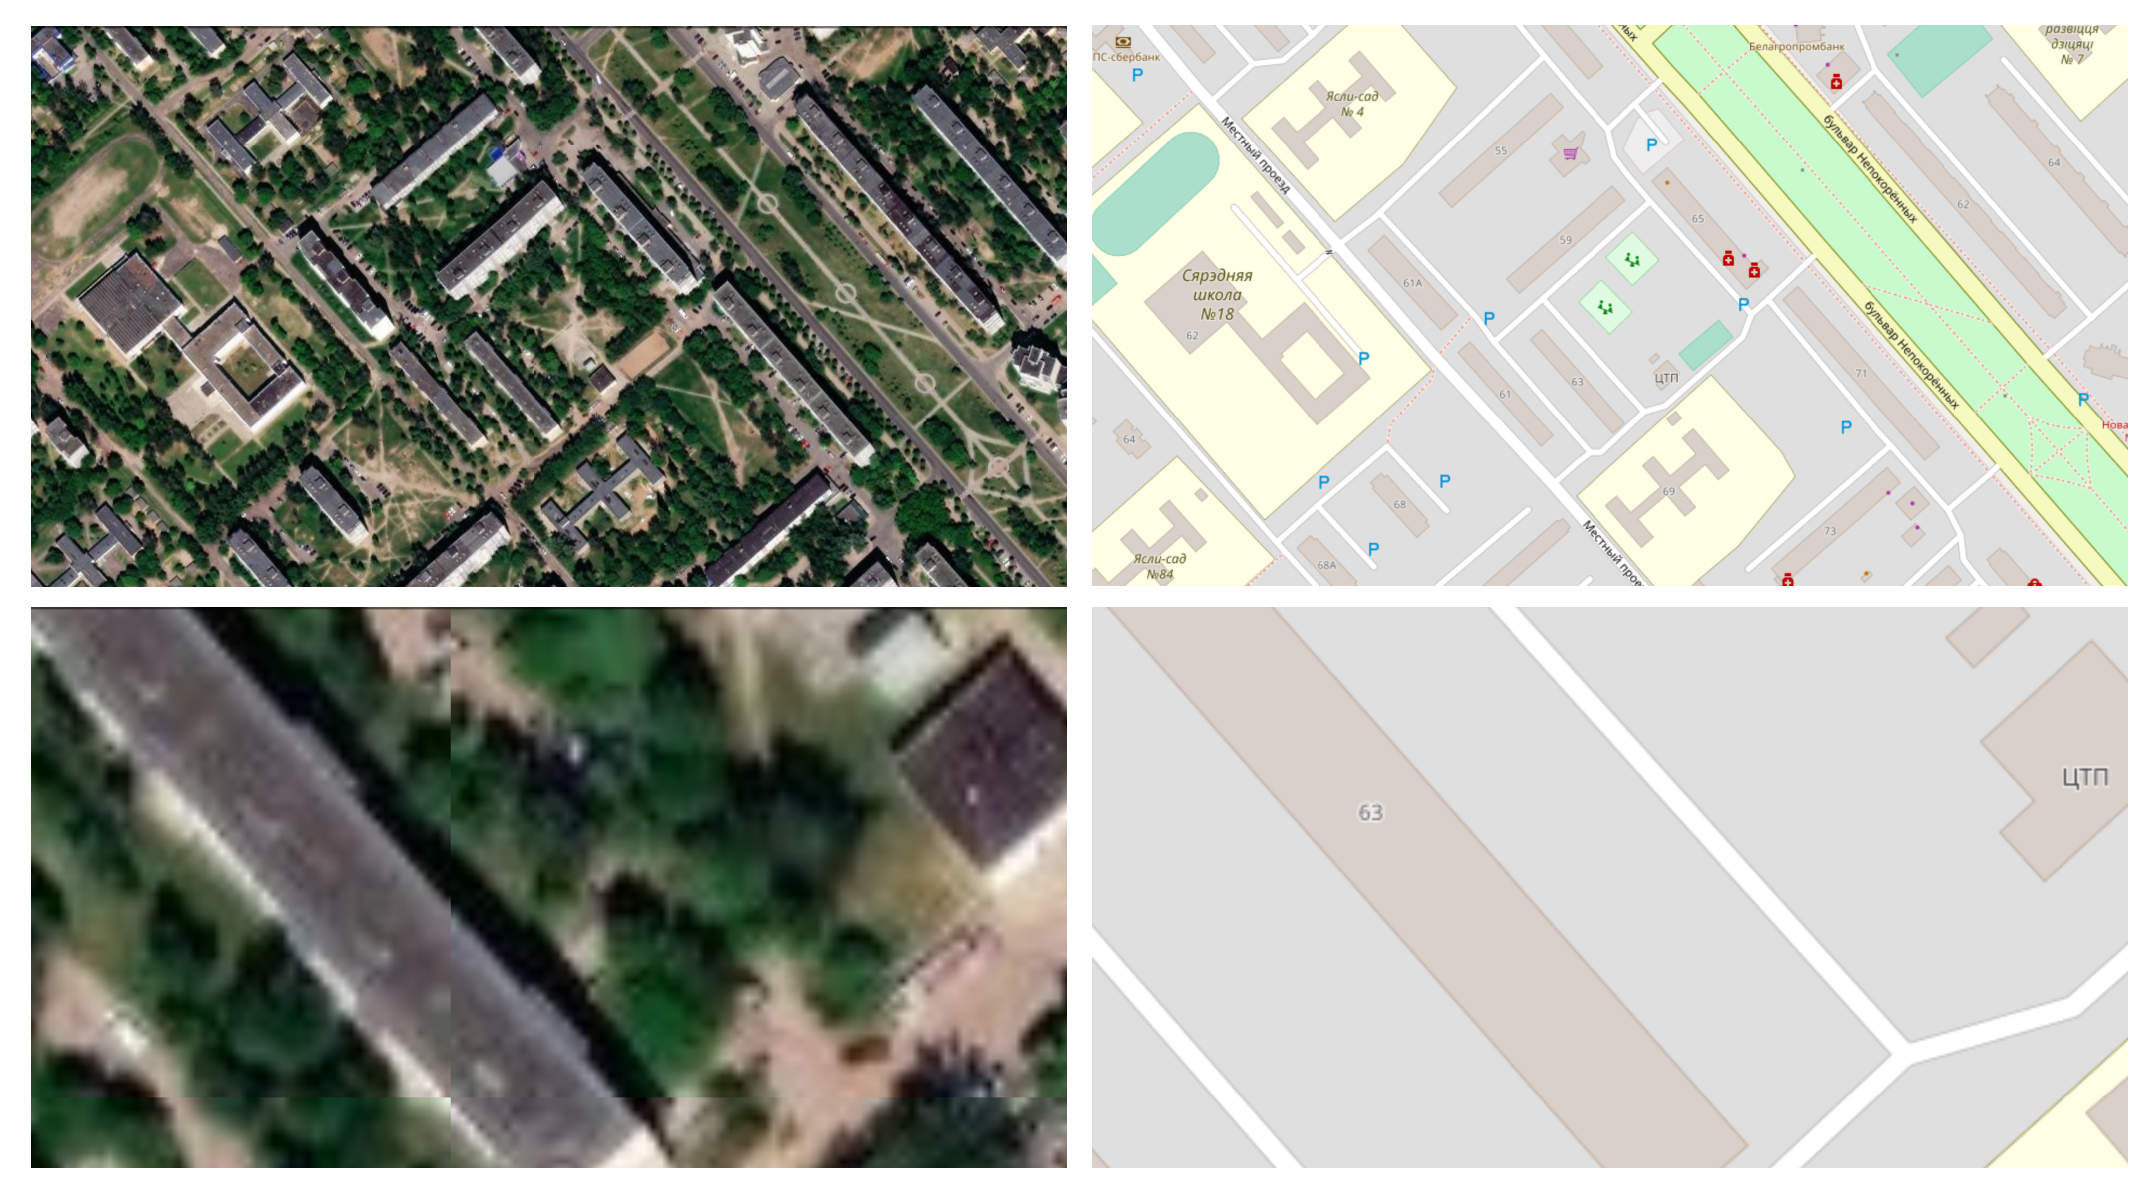 Raster map data from Esri World Imagery (on the left), and vector map data from OpenStreetMap (on the right), both showing Ilya's childhood neighborhood in Mogilev, Belarus. Zooming into raster map data makes it fuzzier, while vector map data retains its sharpness.